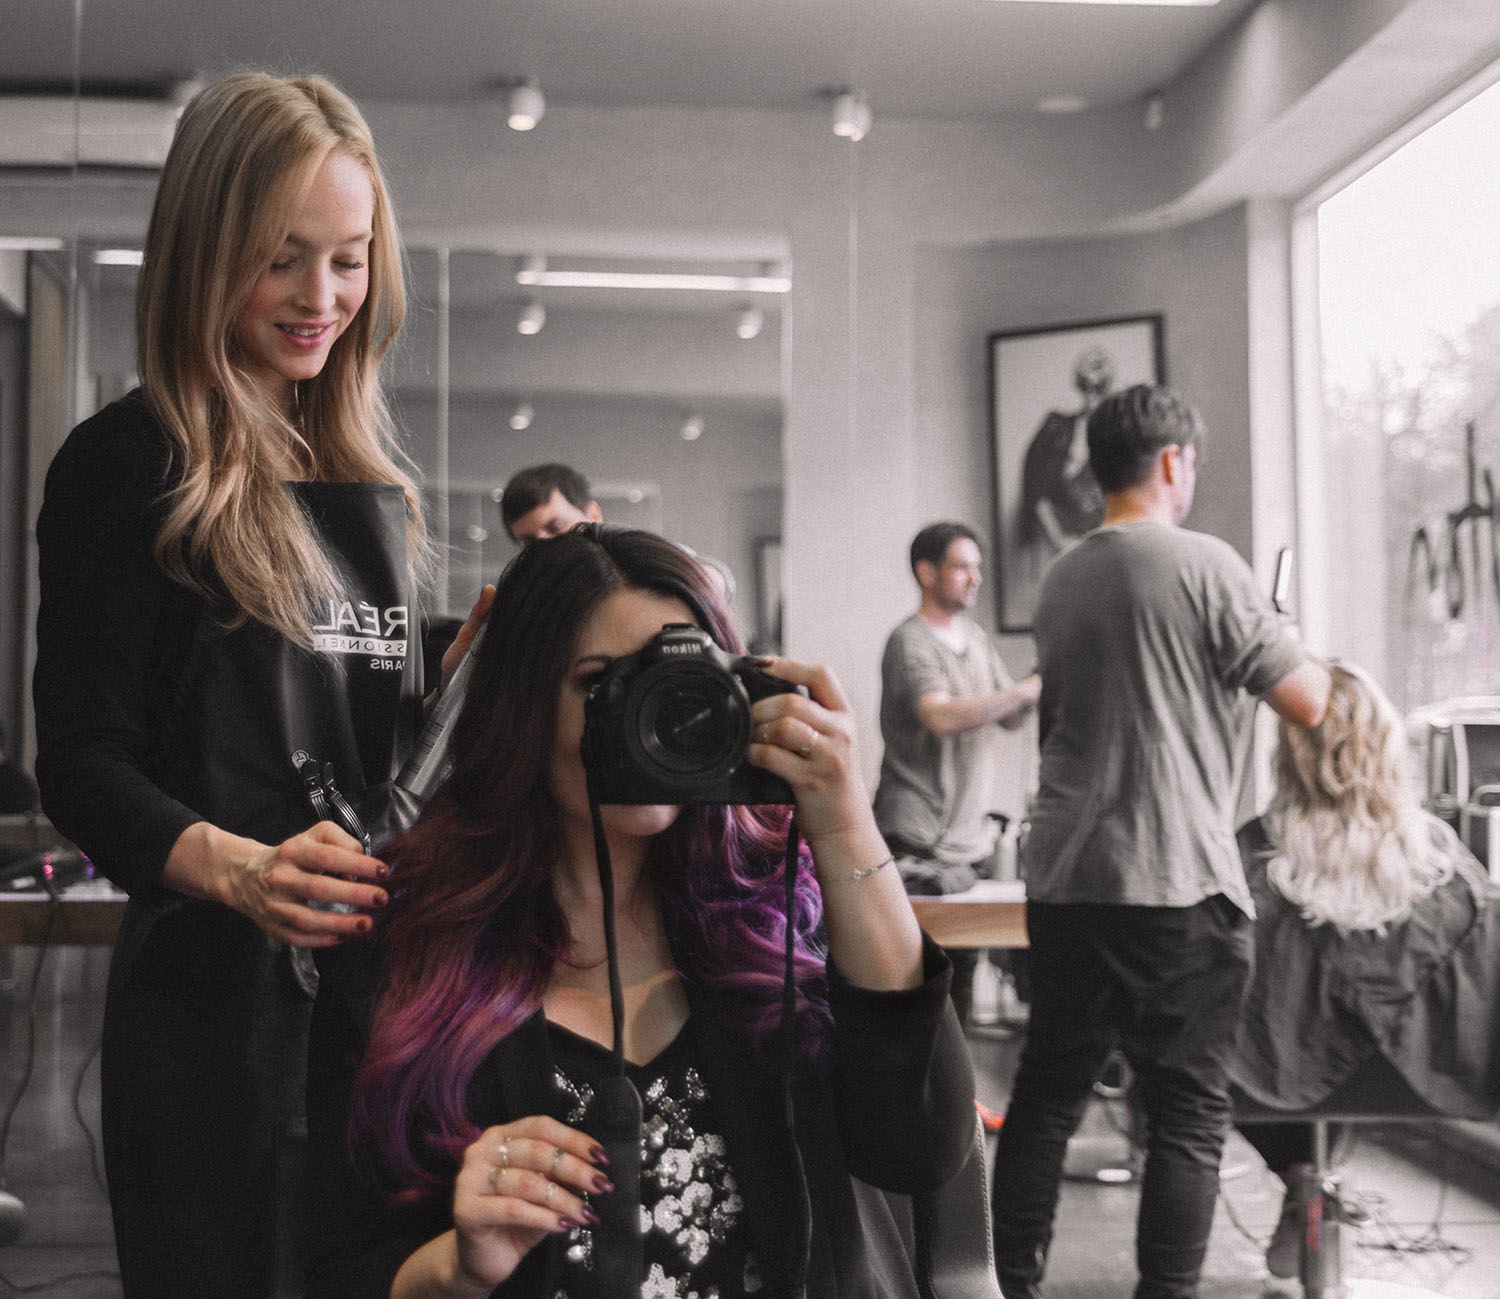 Purple balayage & #Colorfulhair with L'Oreal Professionnel at salon in Stockholm